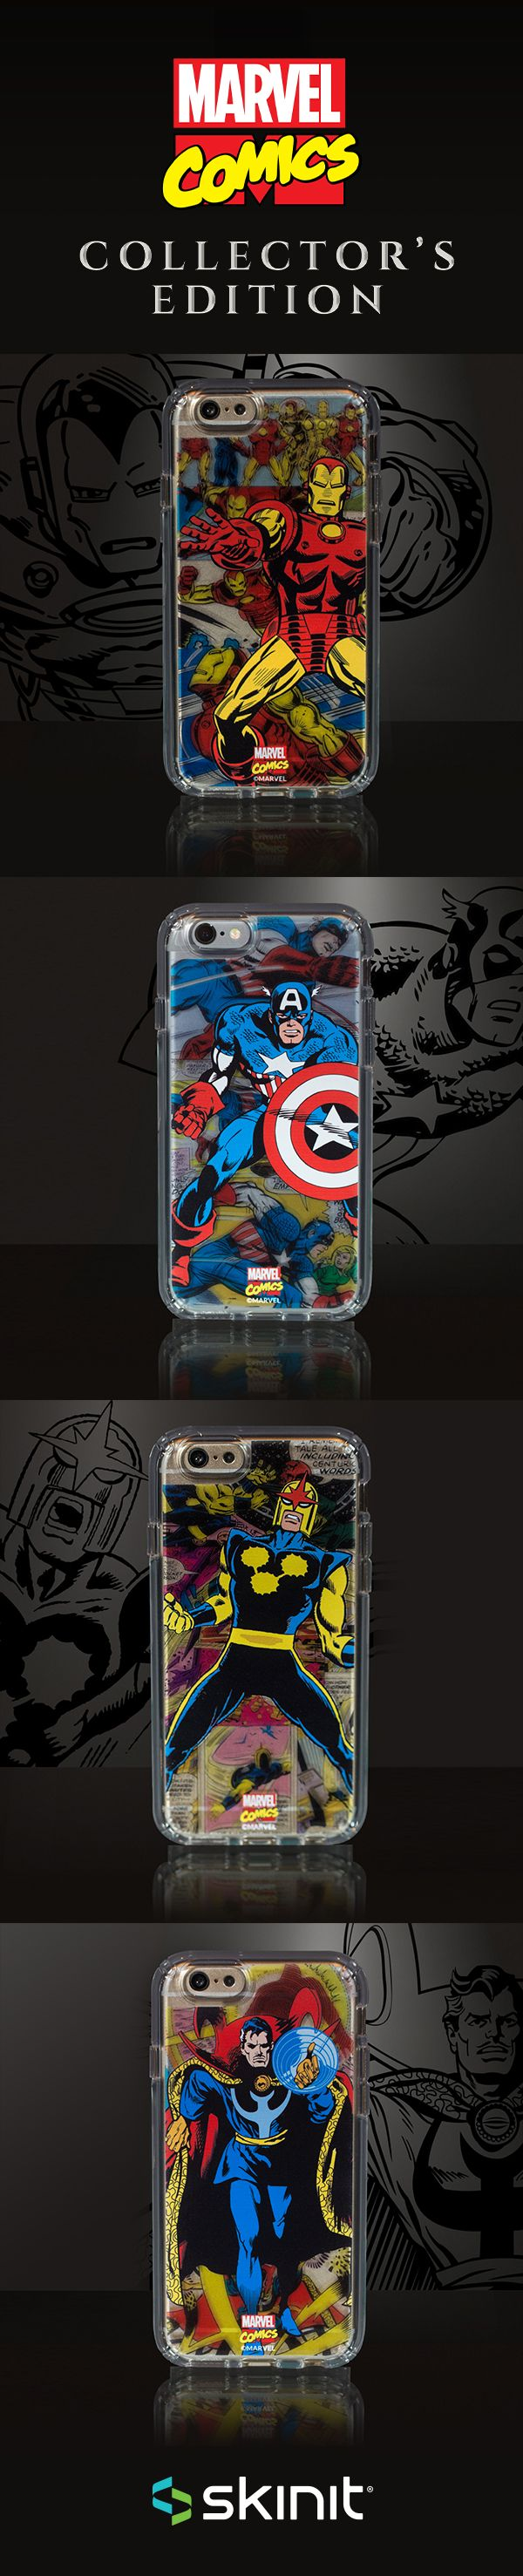 Marvel Collector's Edition | Limited edition transparent cases inspired by the Golden age of Marvel Comics. These special designs are exclusively available for iPhone 6/6s cases & iPhone 6/6s Plus cases at www.skinit.com #Marvel